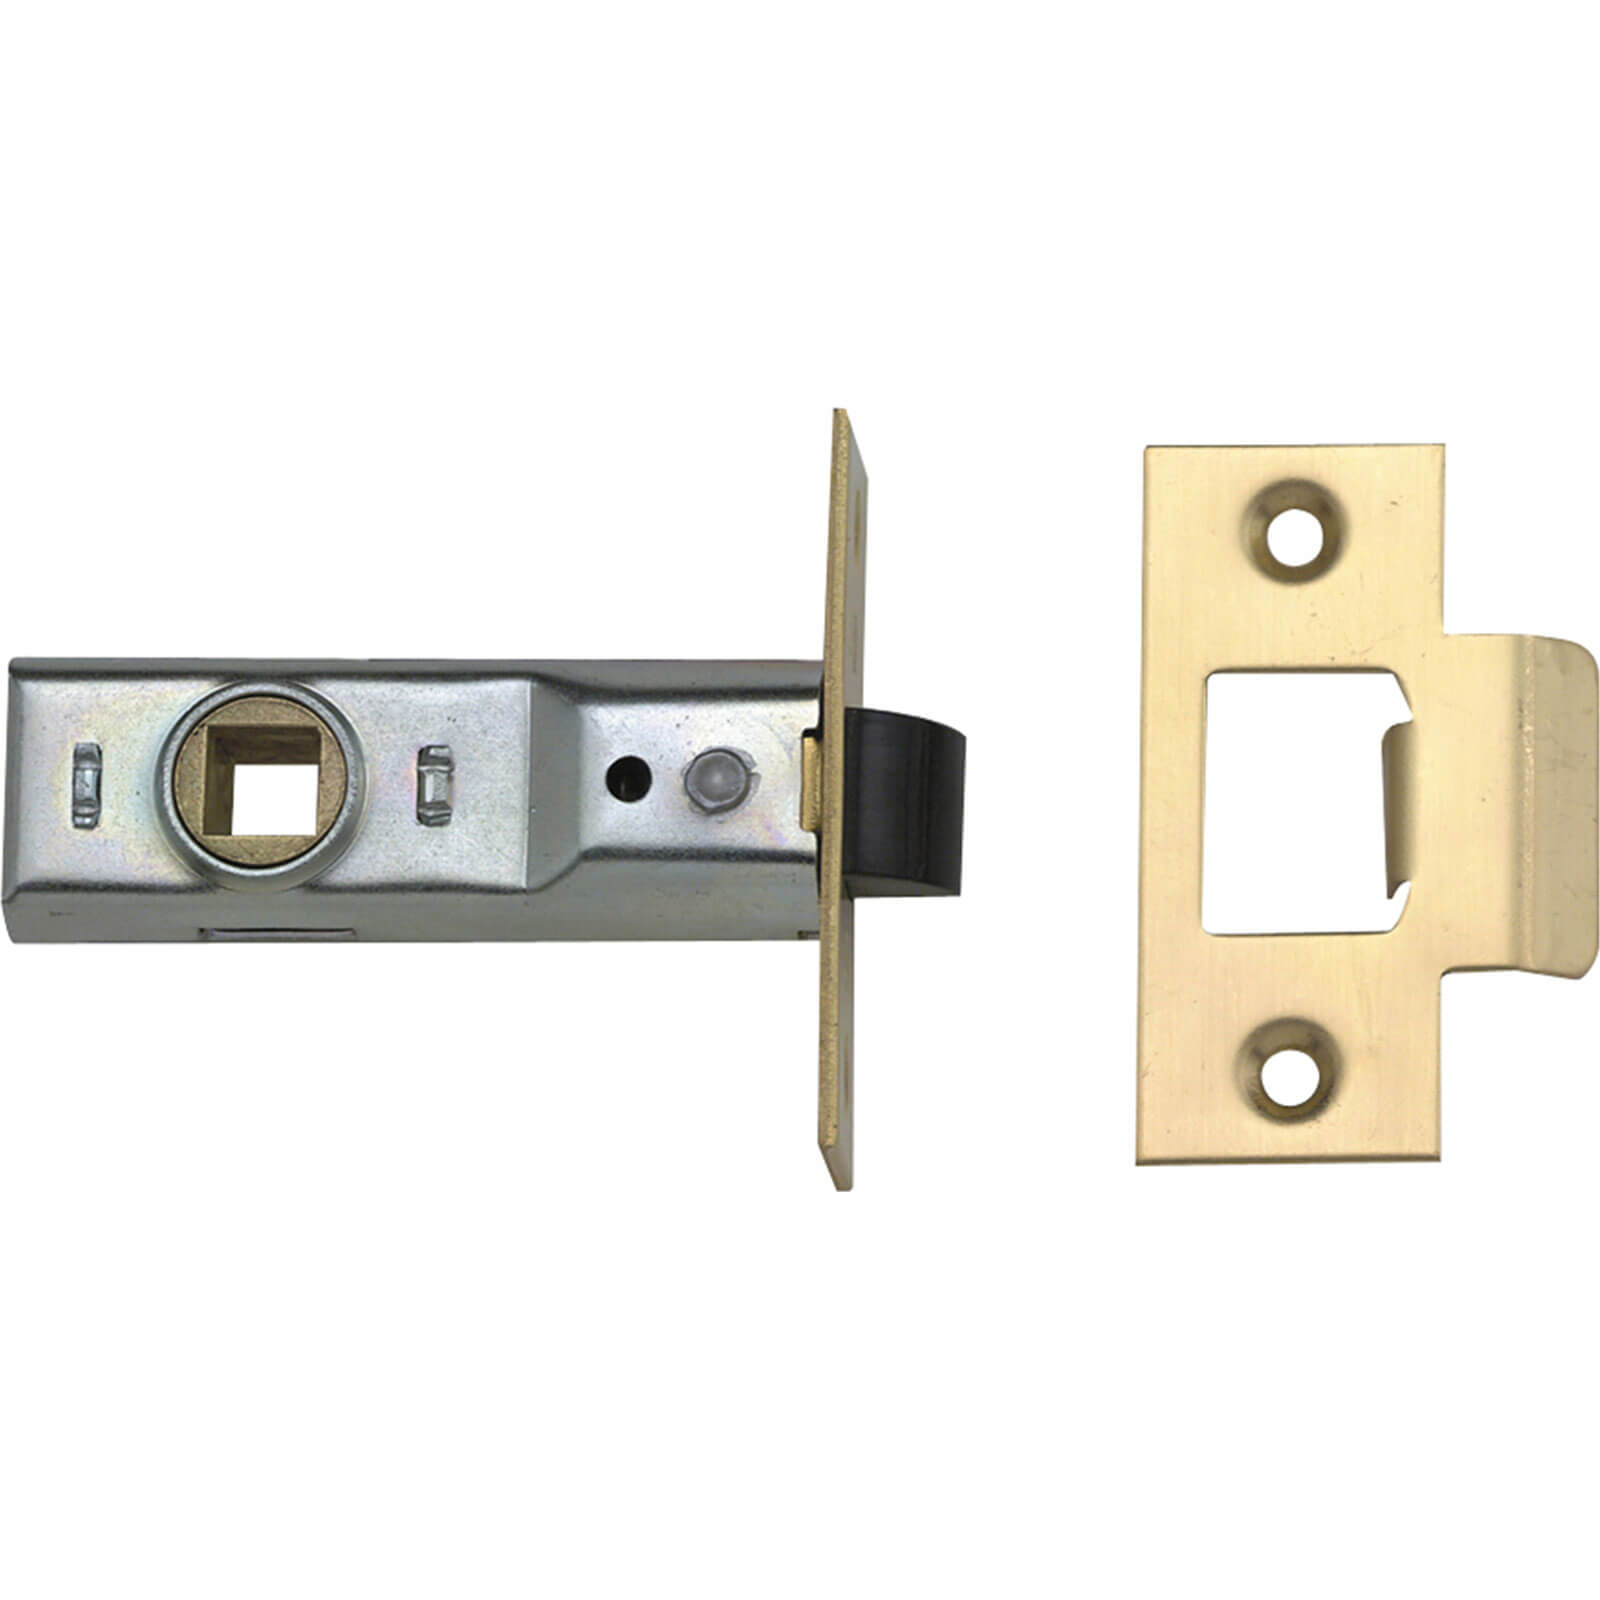 "Tooled Up/Ironmongery & Security/Ironmongery/Yale Locks M888 Rebated Mortice Latch 64mm / 2.5"" Zinc Plated of 1"